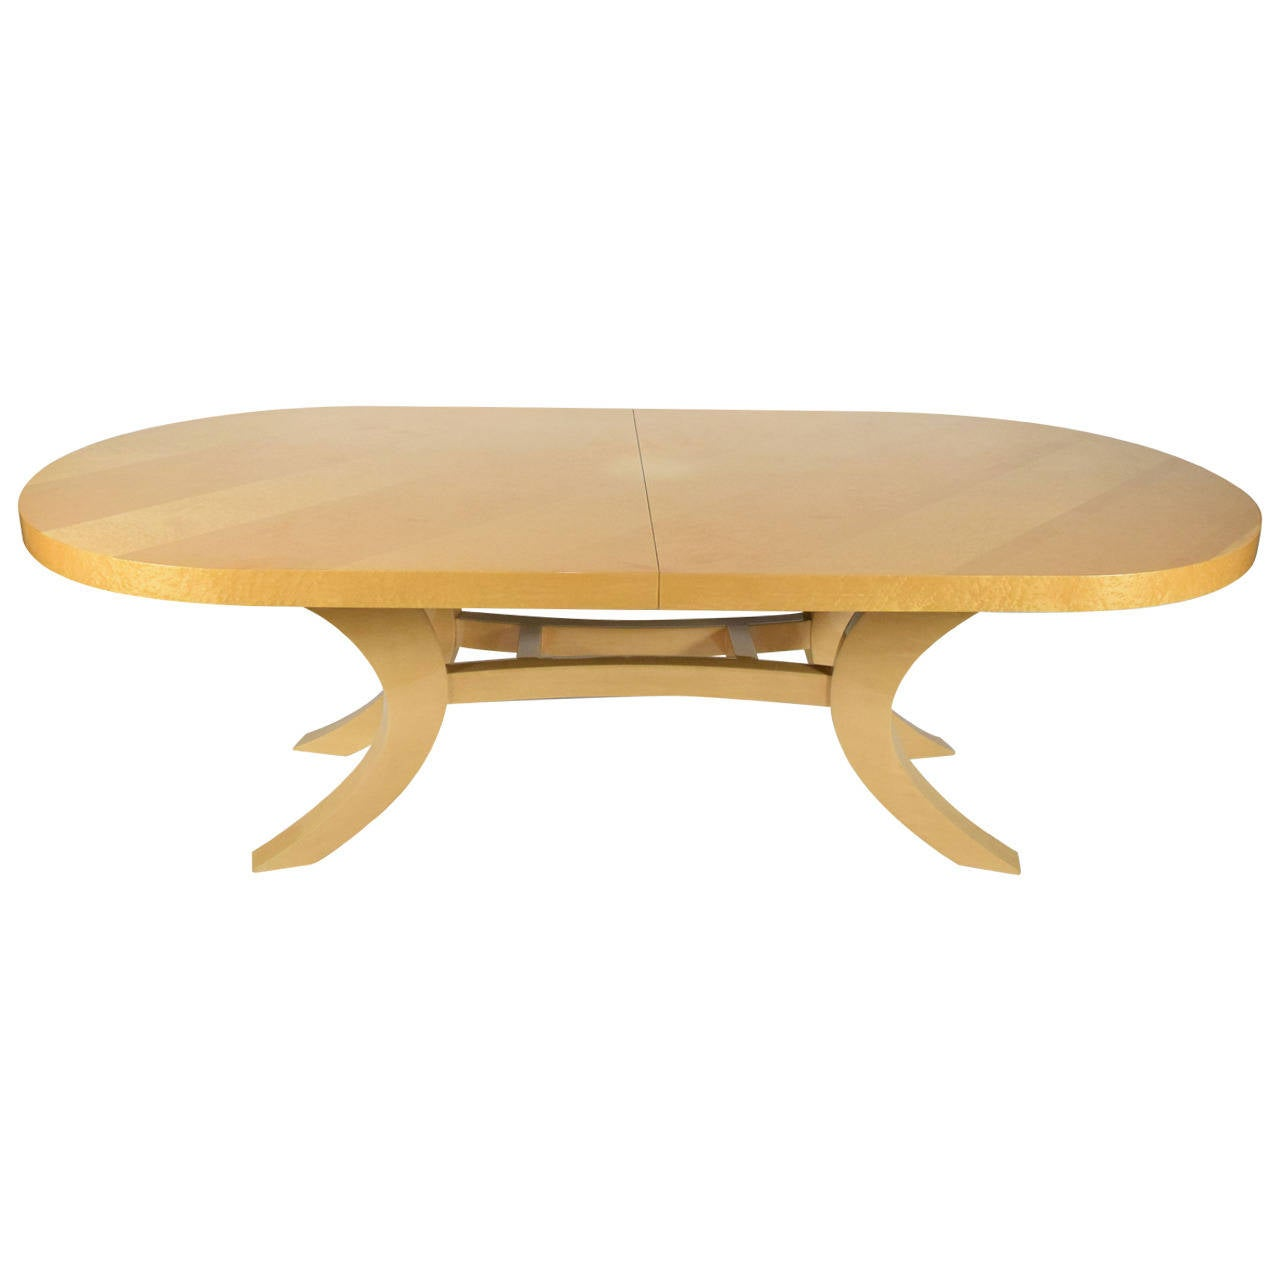 Dakota jackson splayed leg dining table at 1stdibs for One leg dining table